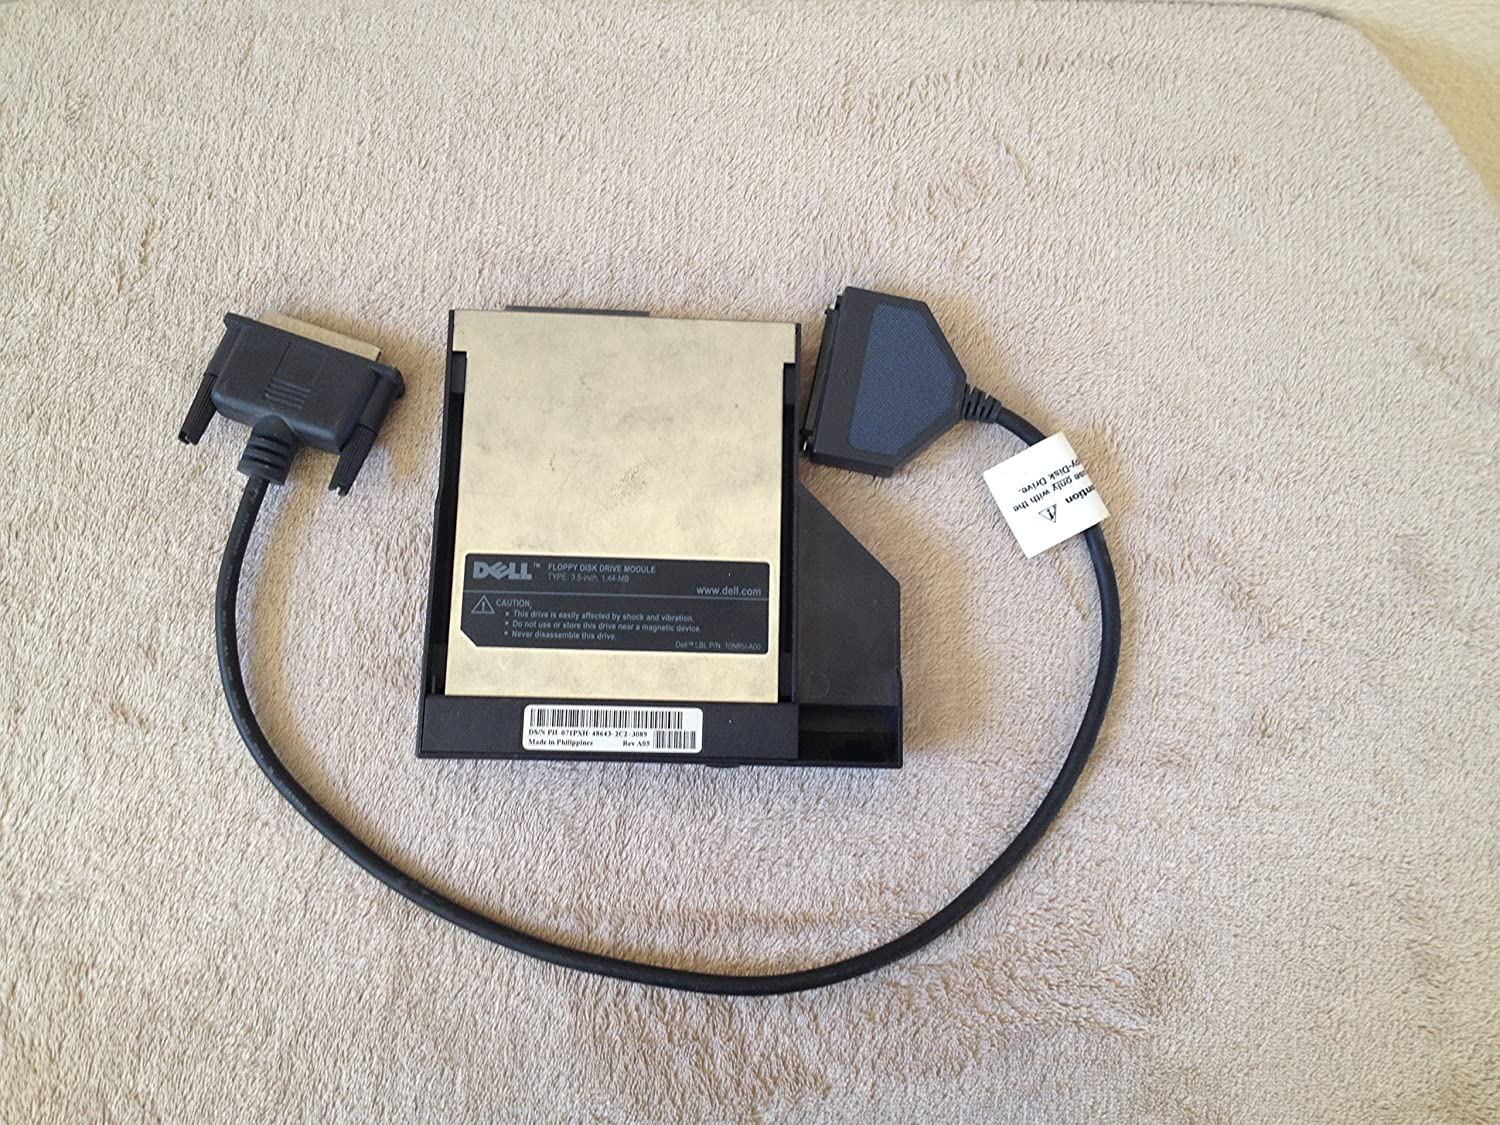 Dell Floppy Disk Drive Module Laptop 3.5 Inch Black 1.44 MB 10NRV-A00